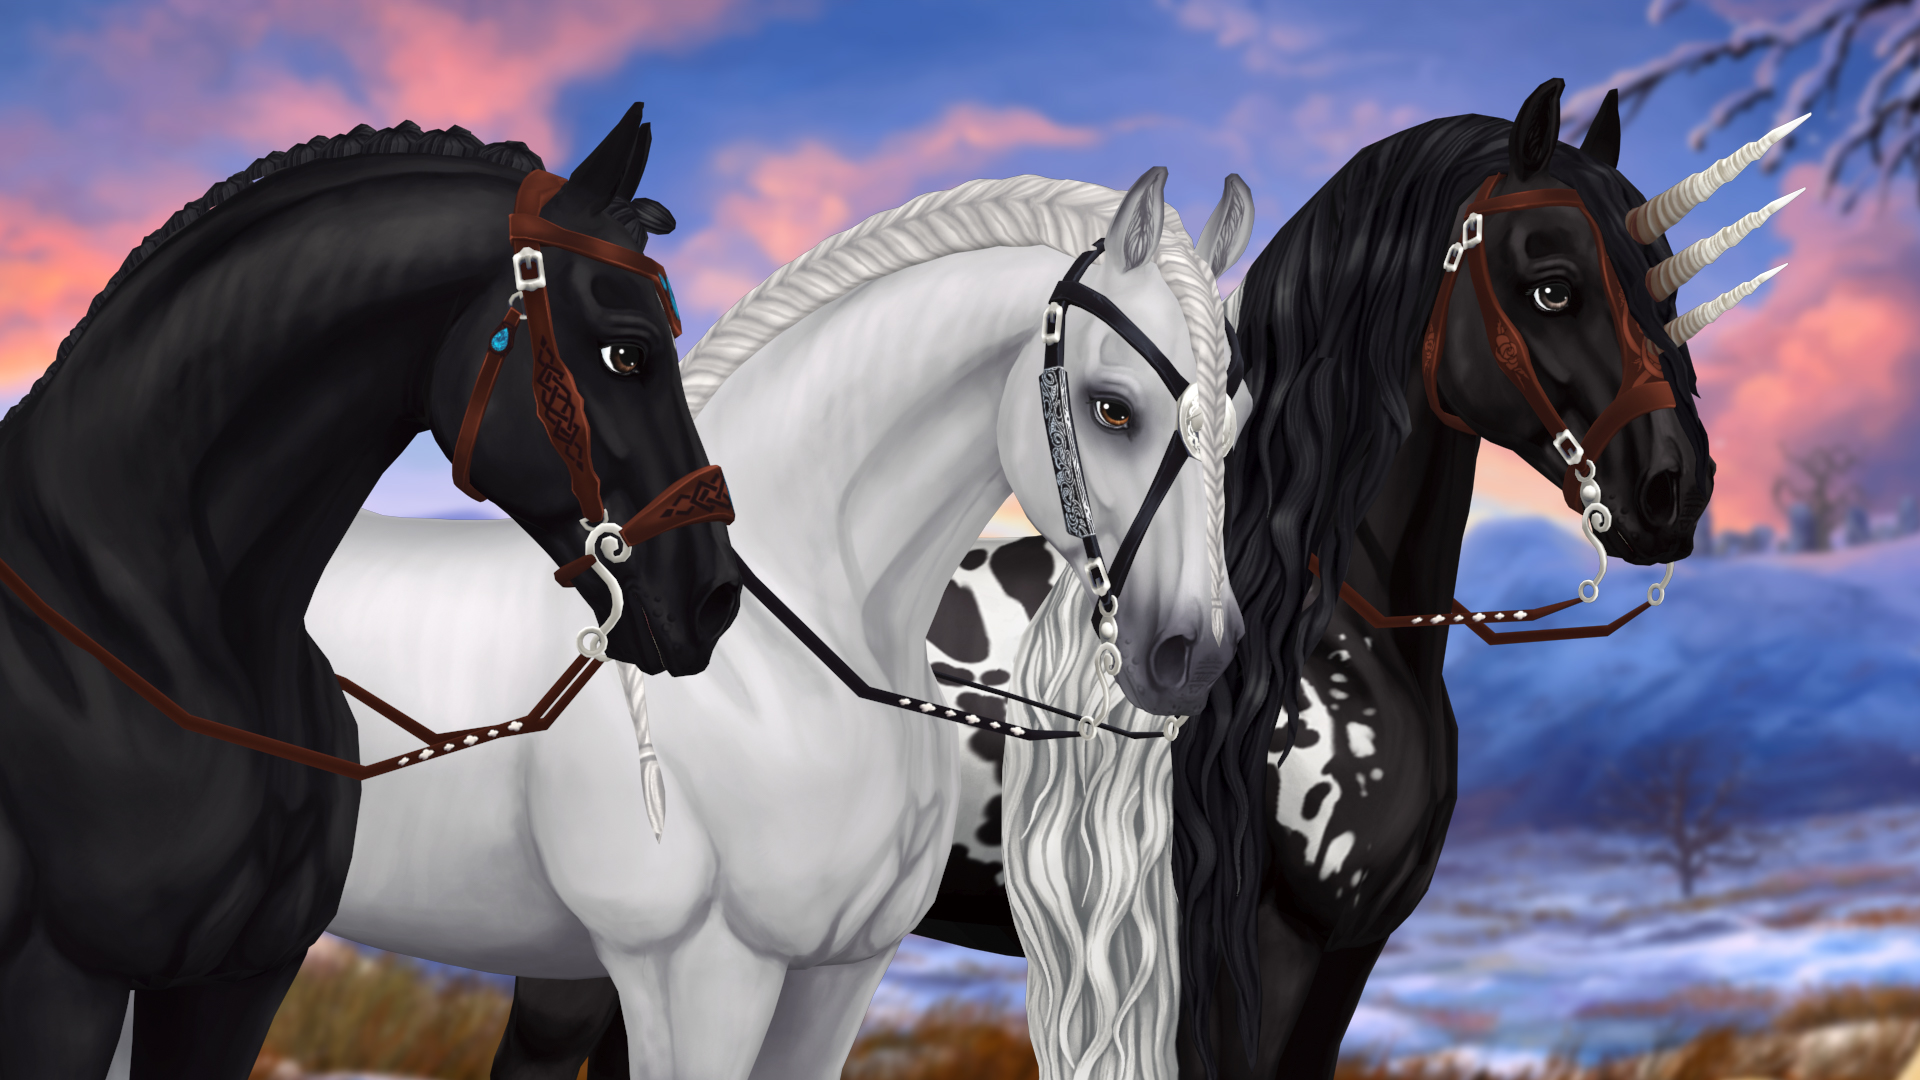 Which bridle color is your favorite?